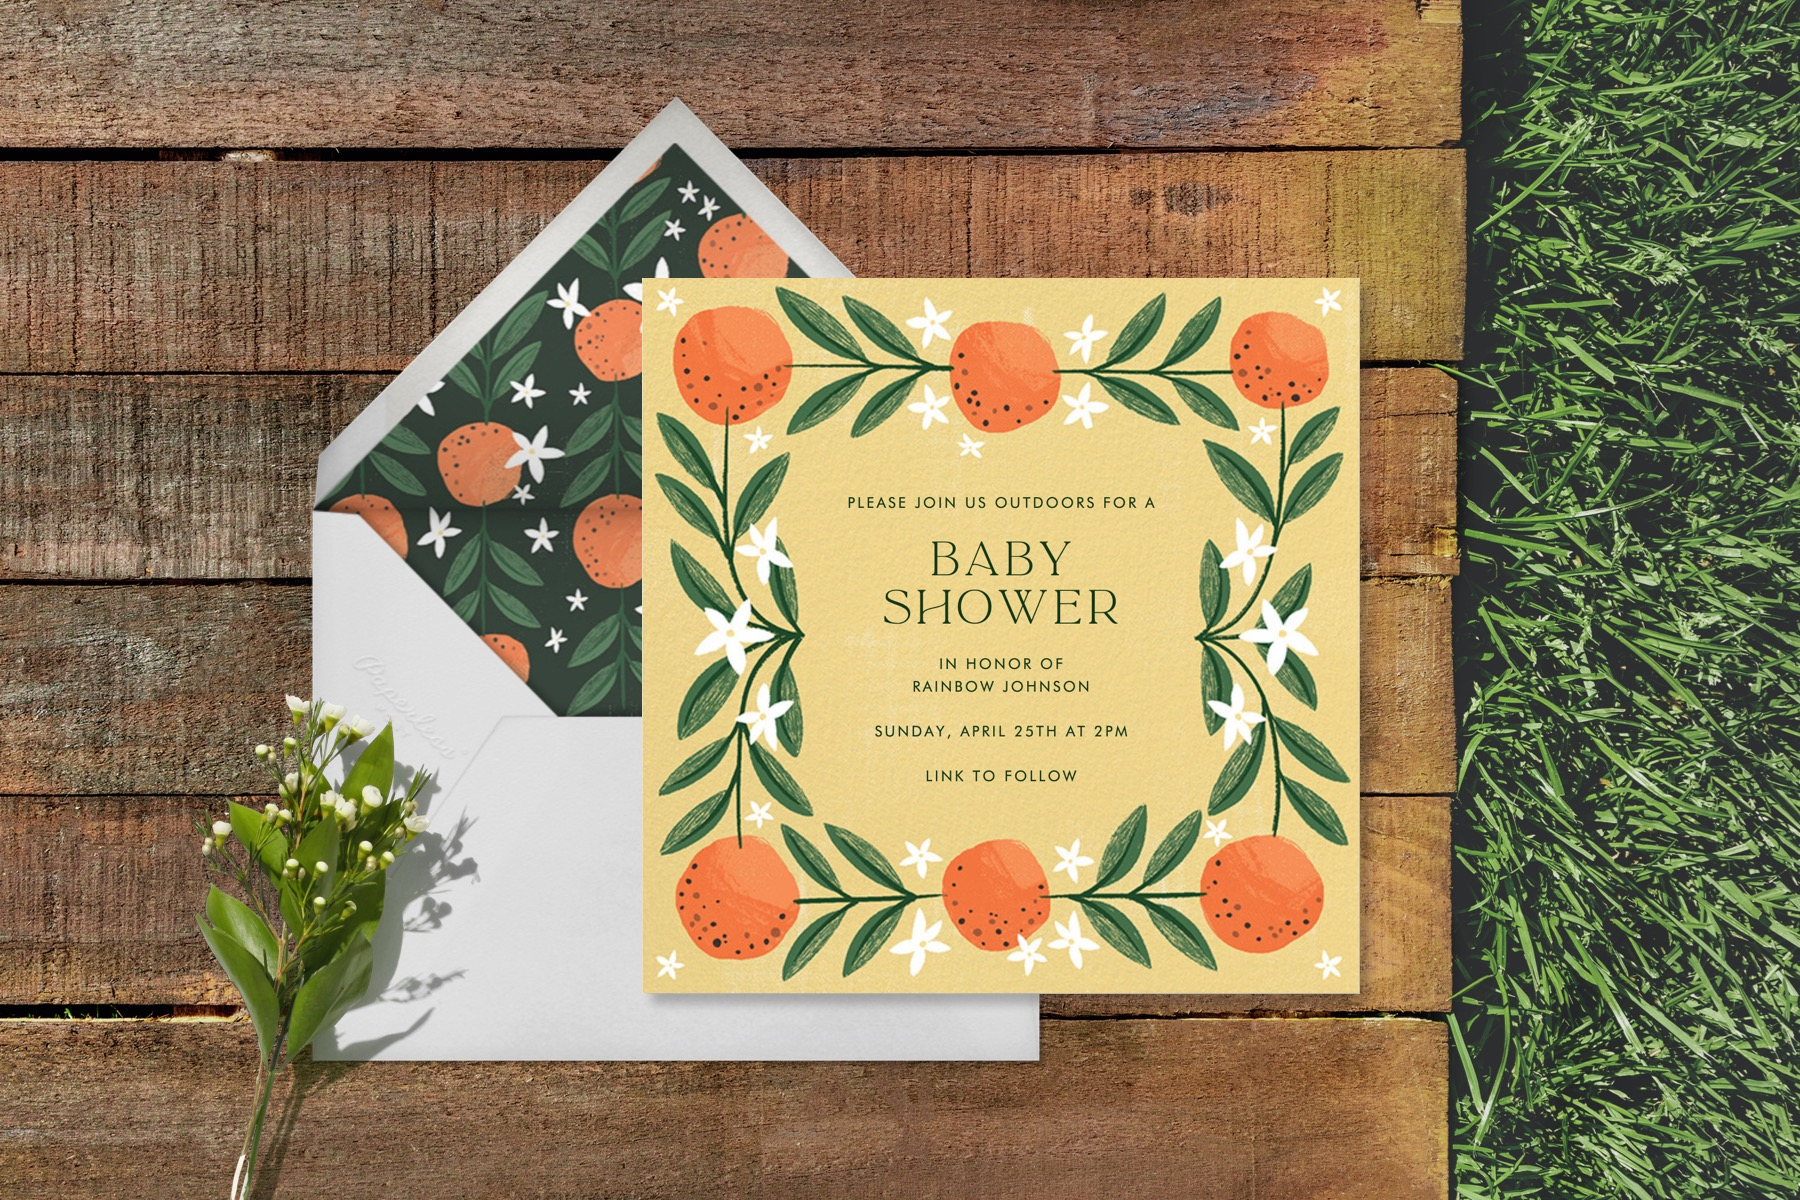 Outdoor Baby Shower Ideas That Will Help You Celebrate Your Growing Family